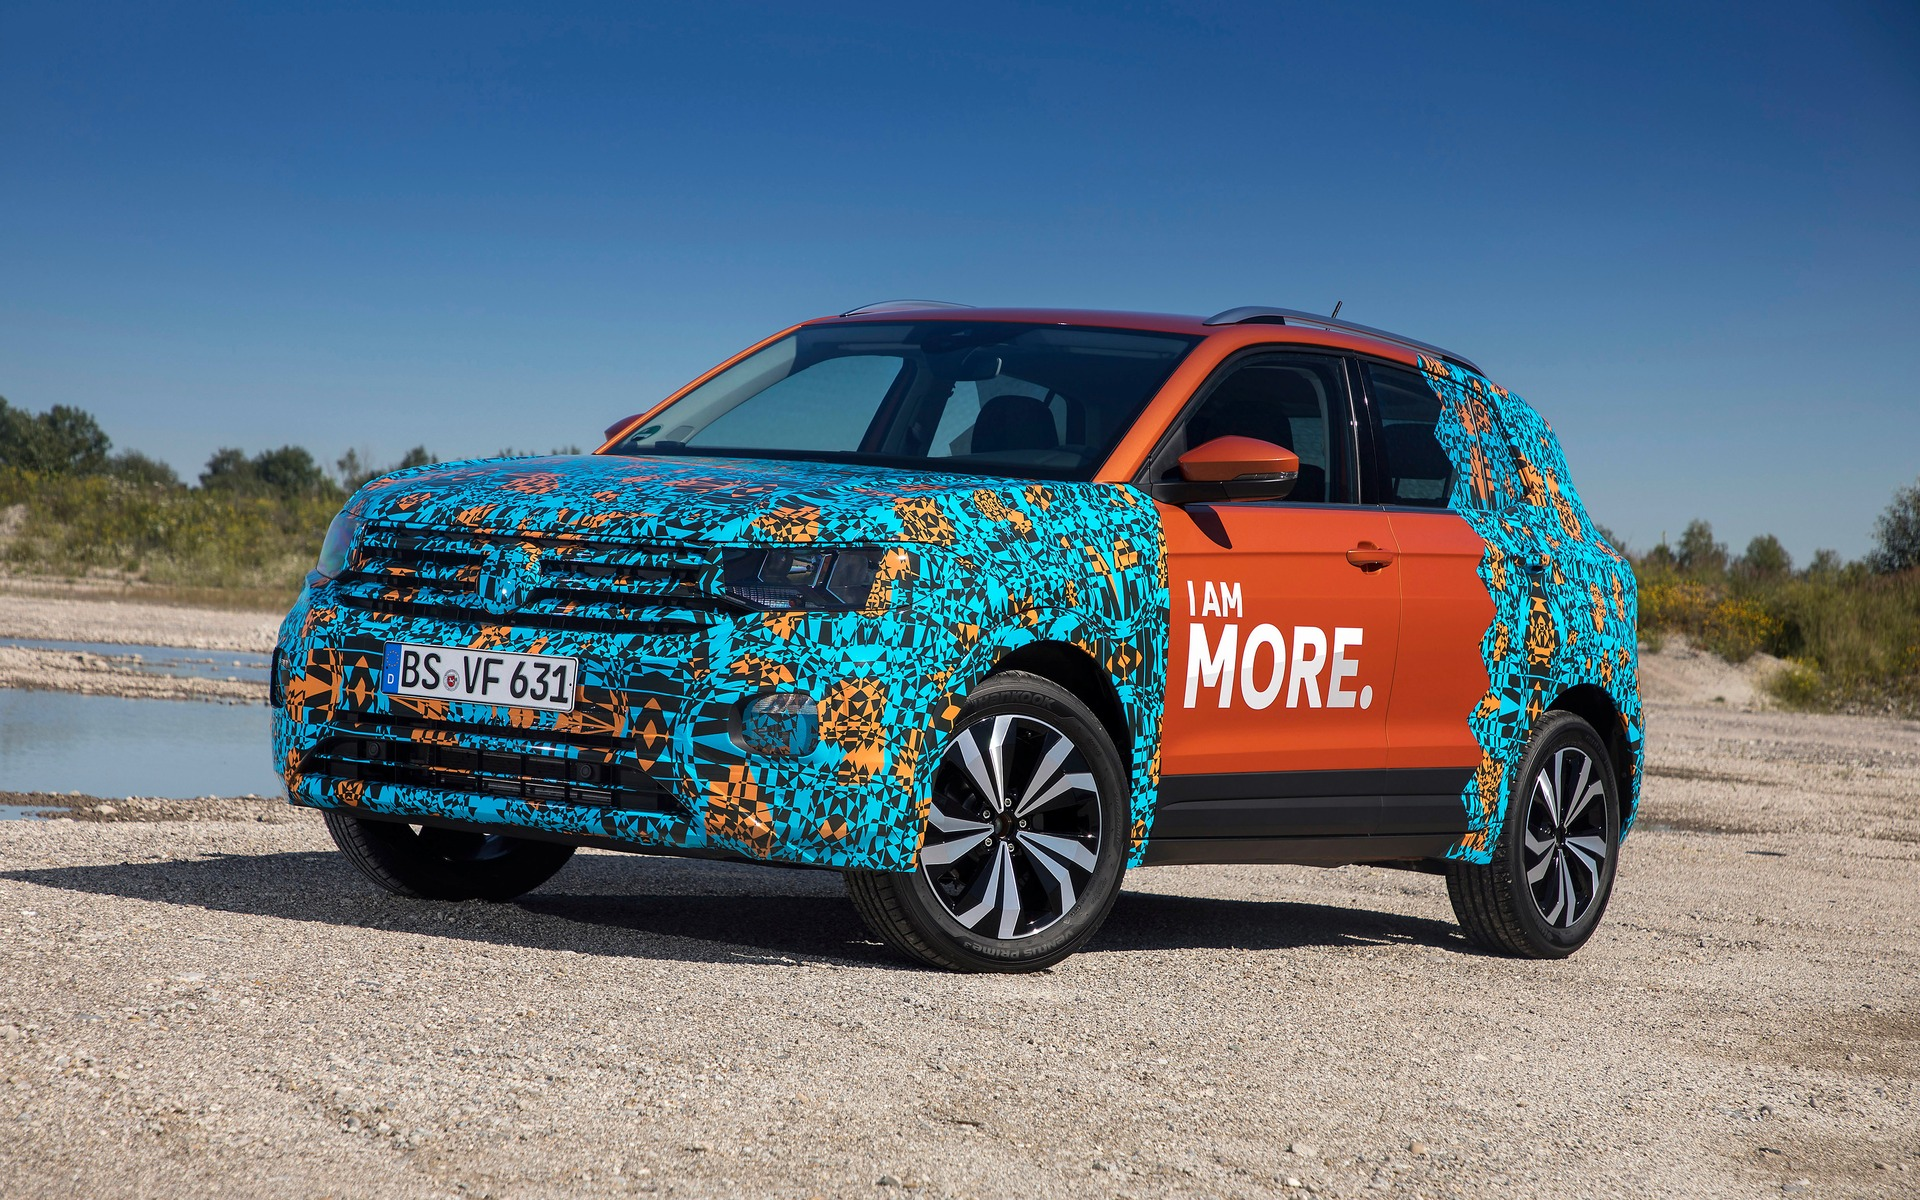 Prototype of the new Volkswagen T-Cross